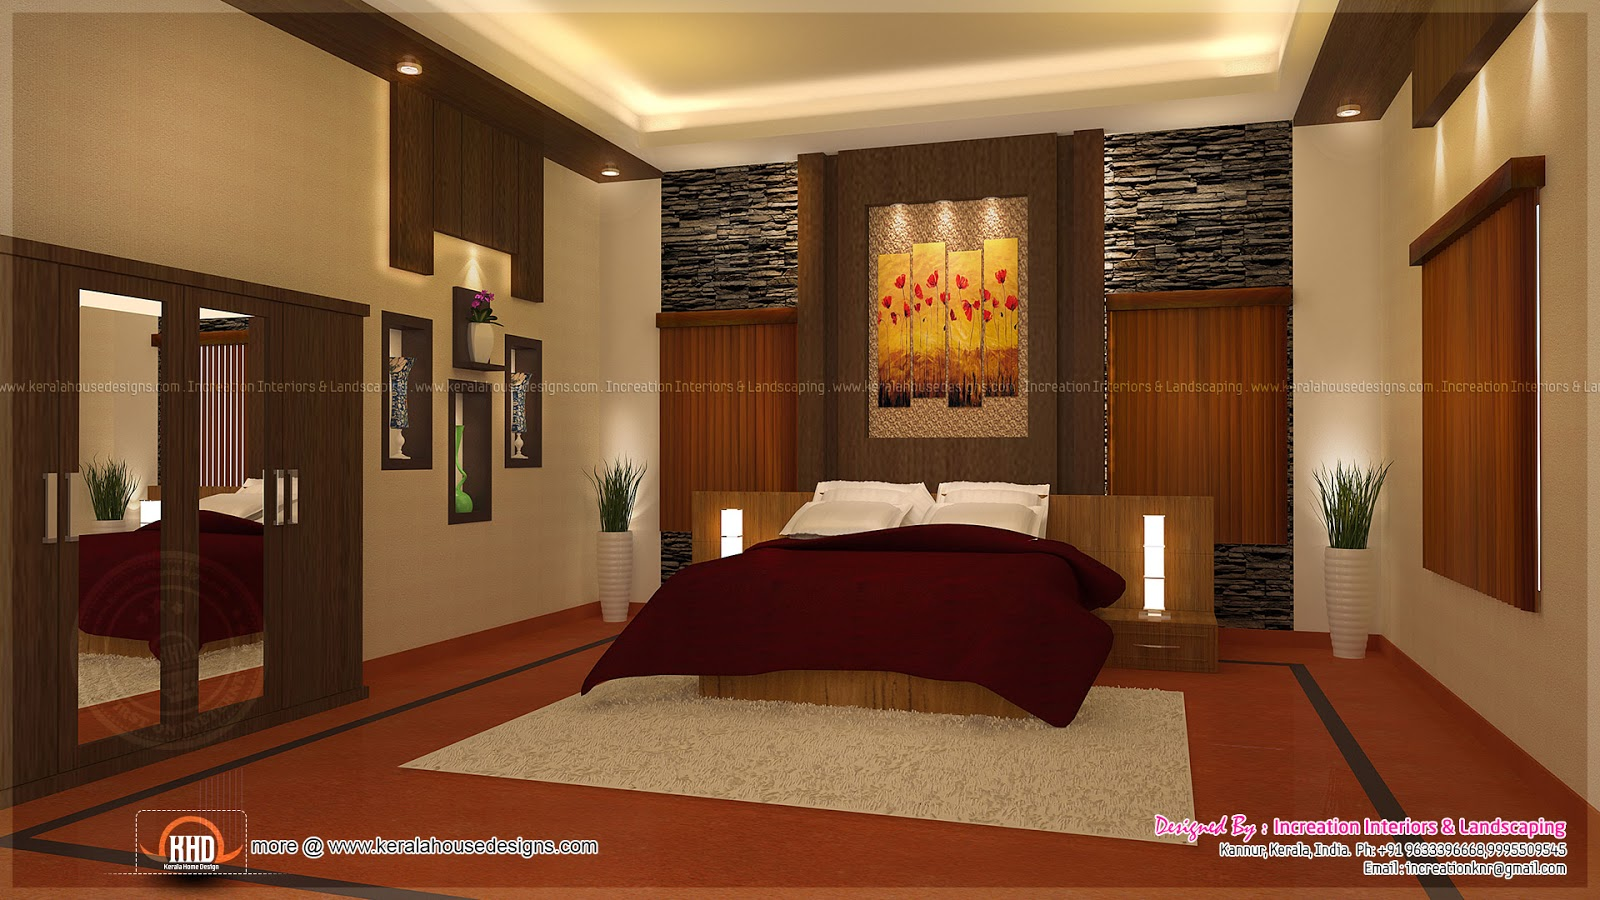 house interior ideas in 3d rendering home kerala plans. Black Bedroom Furniture Sets. Home Design Ideas